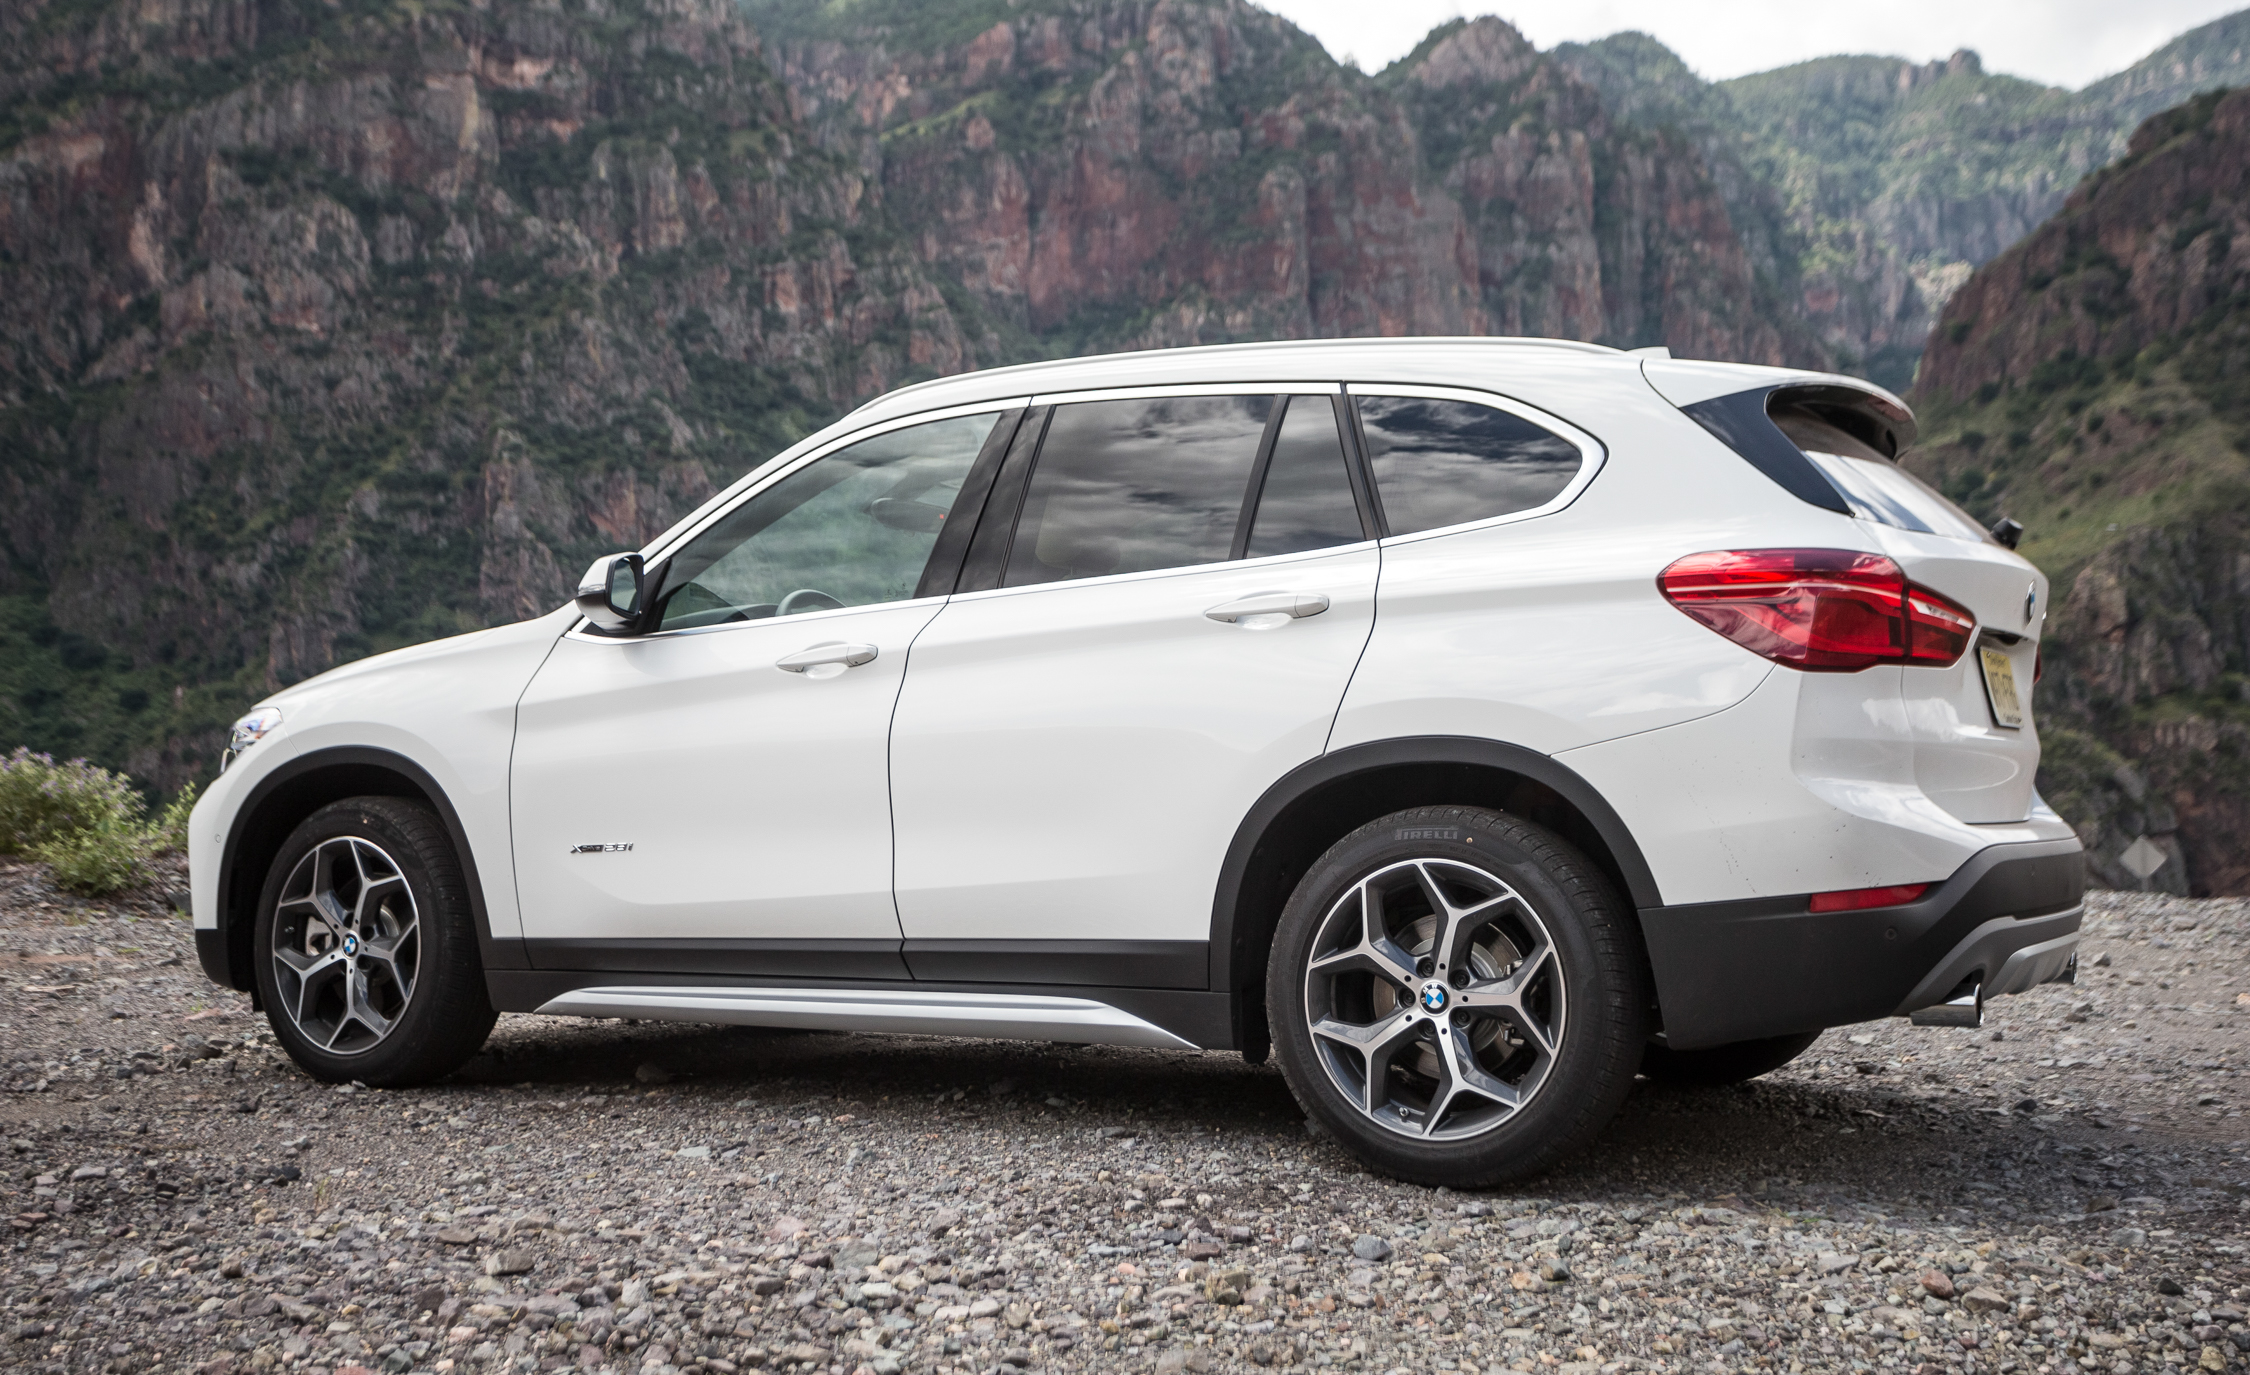 2016 BMW X1 Exterior White Metallic Side (View 29 of 36)